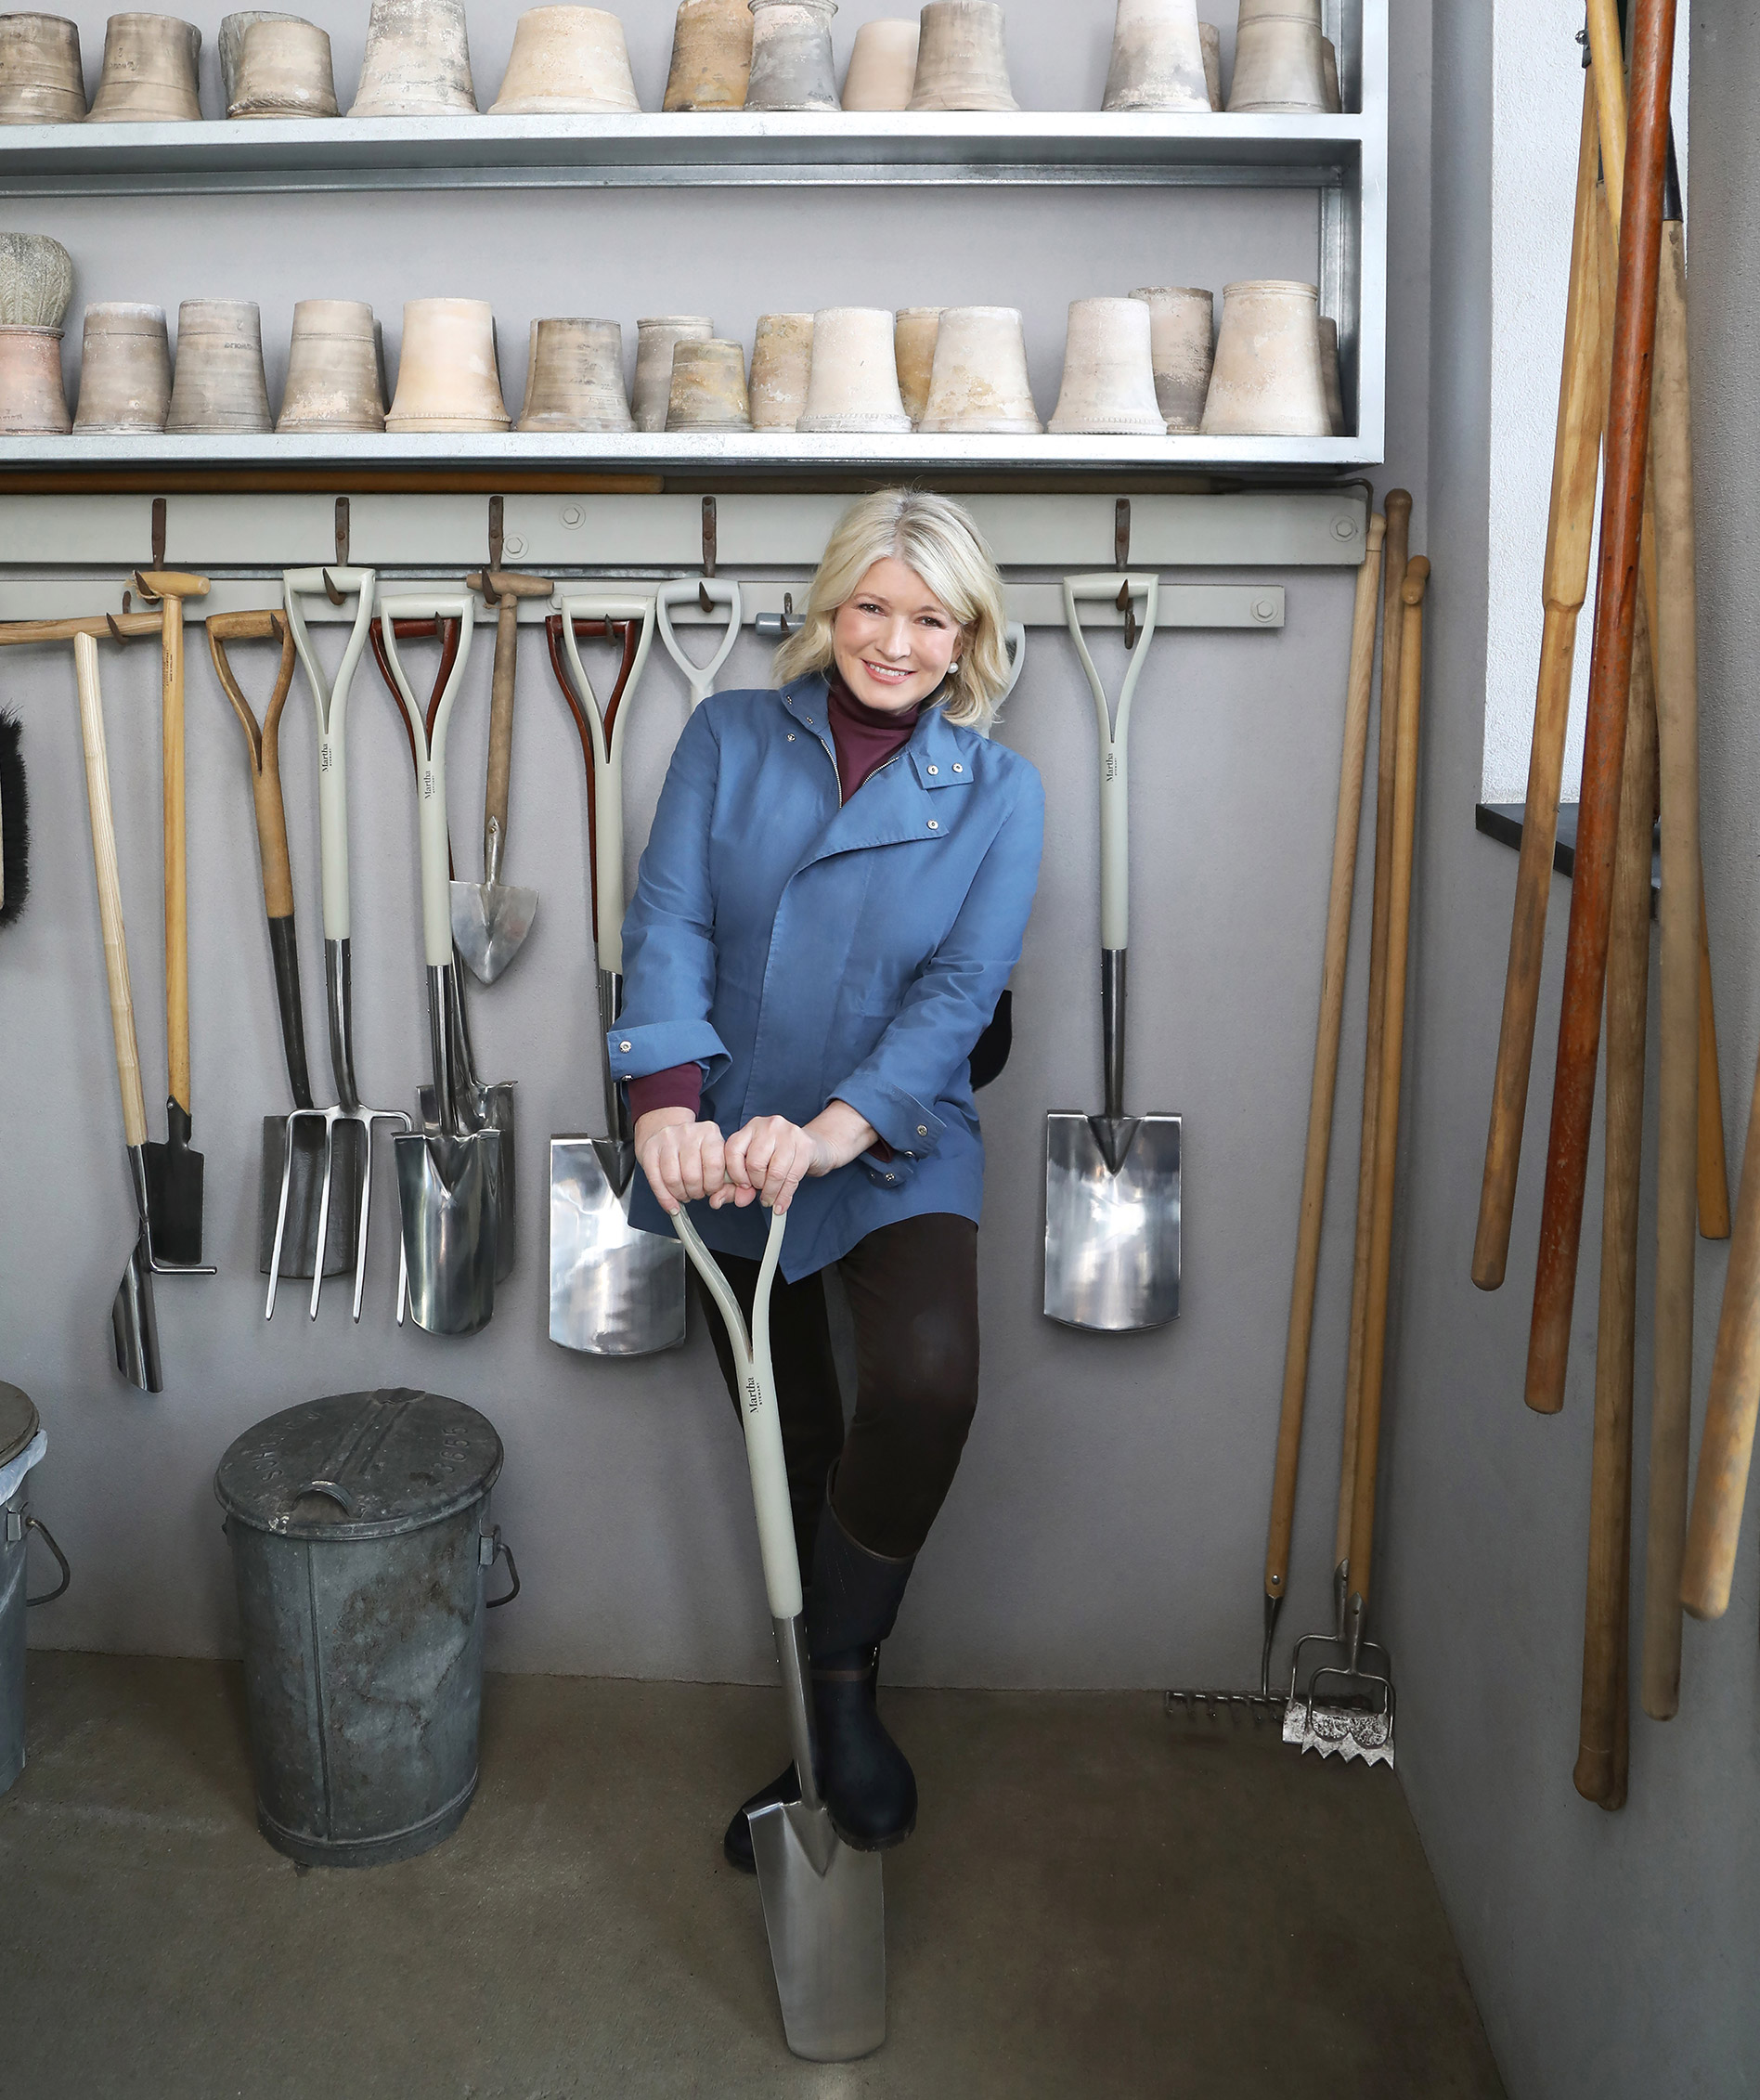 martha stewart standing with a shovel